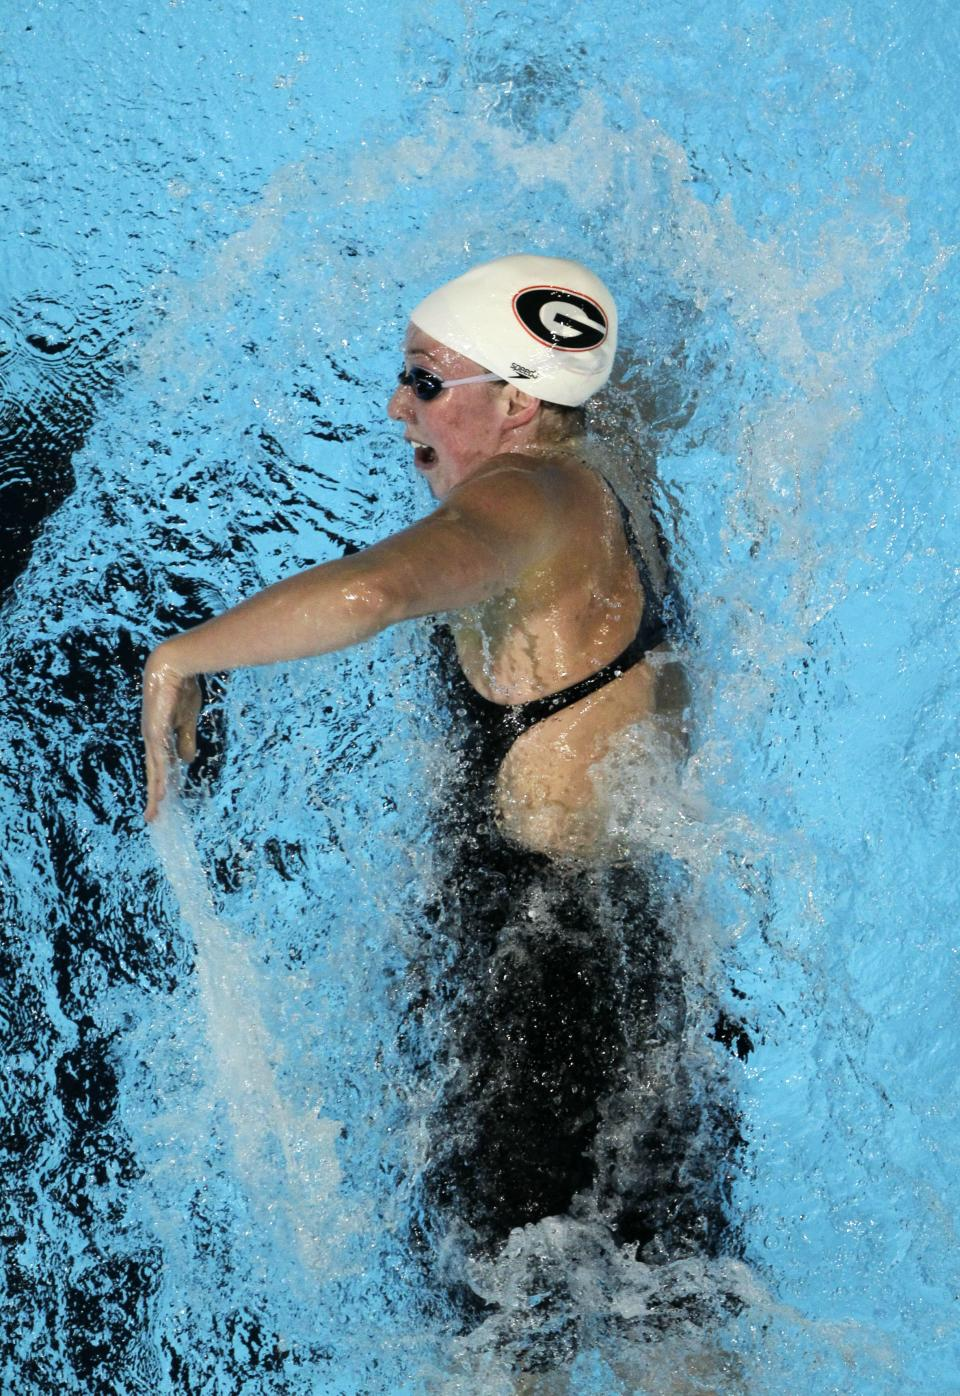 Shannon Vreeland swims in a women's 200-meter freestyle semifinal at the U.S. Olympic swimming trials, Wednesday, June 27, 2012, in Omaha, Neb. (AP Photo/Nati Harnik)